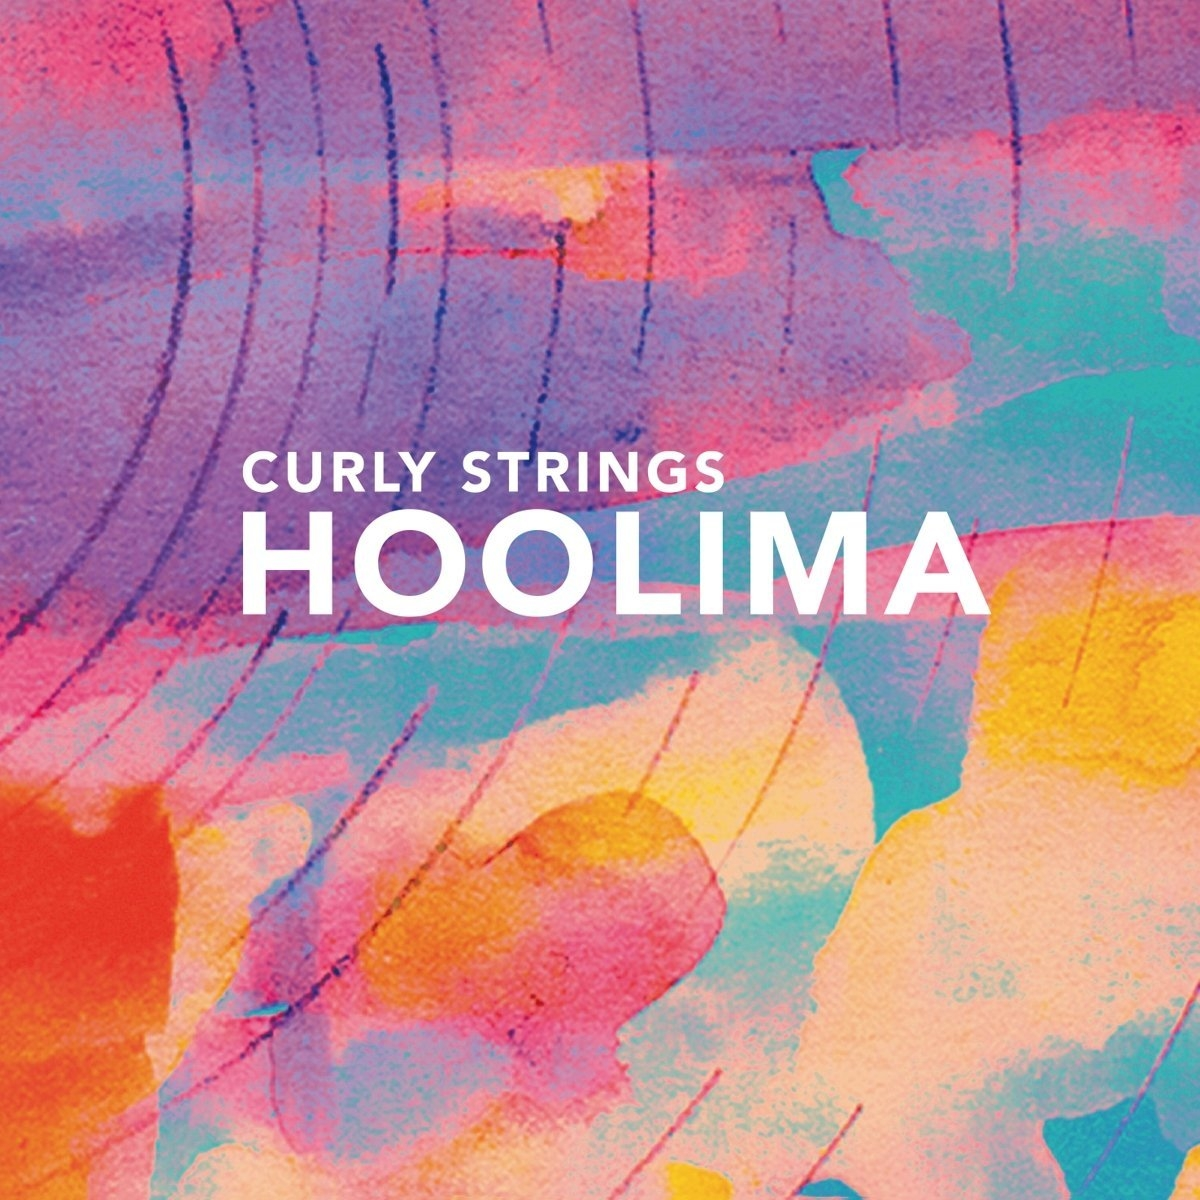 world 07 18 Curly Strings